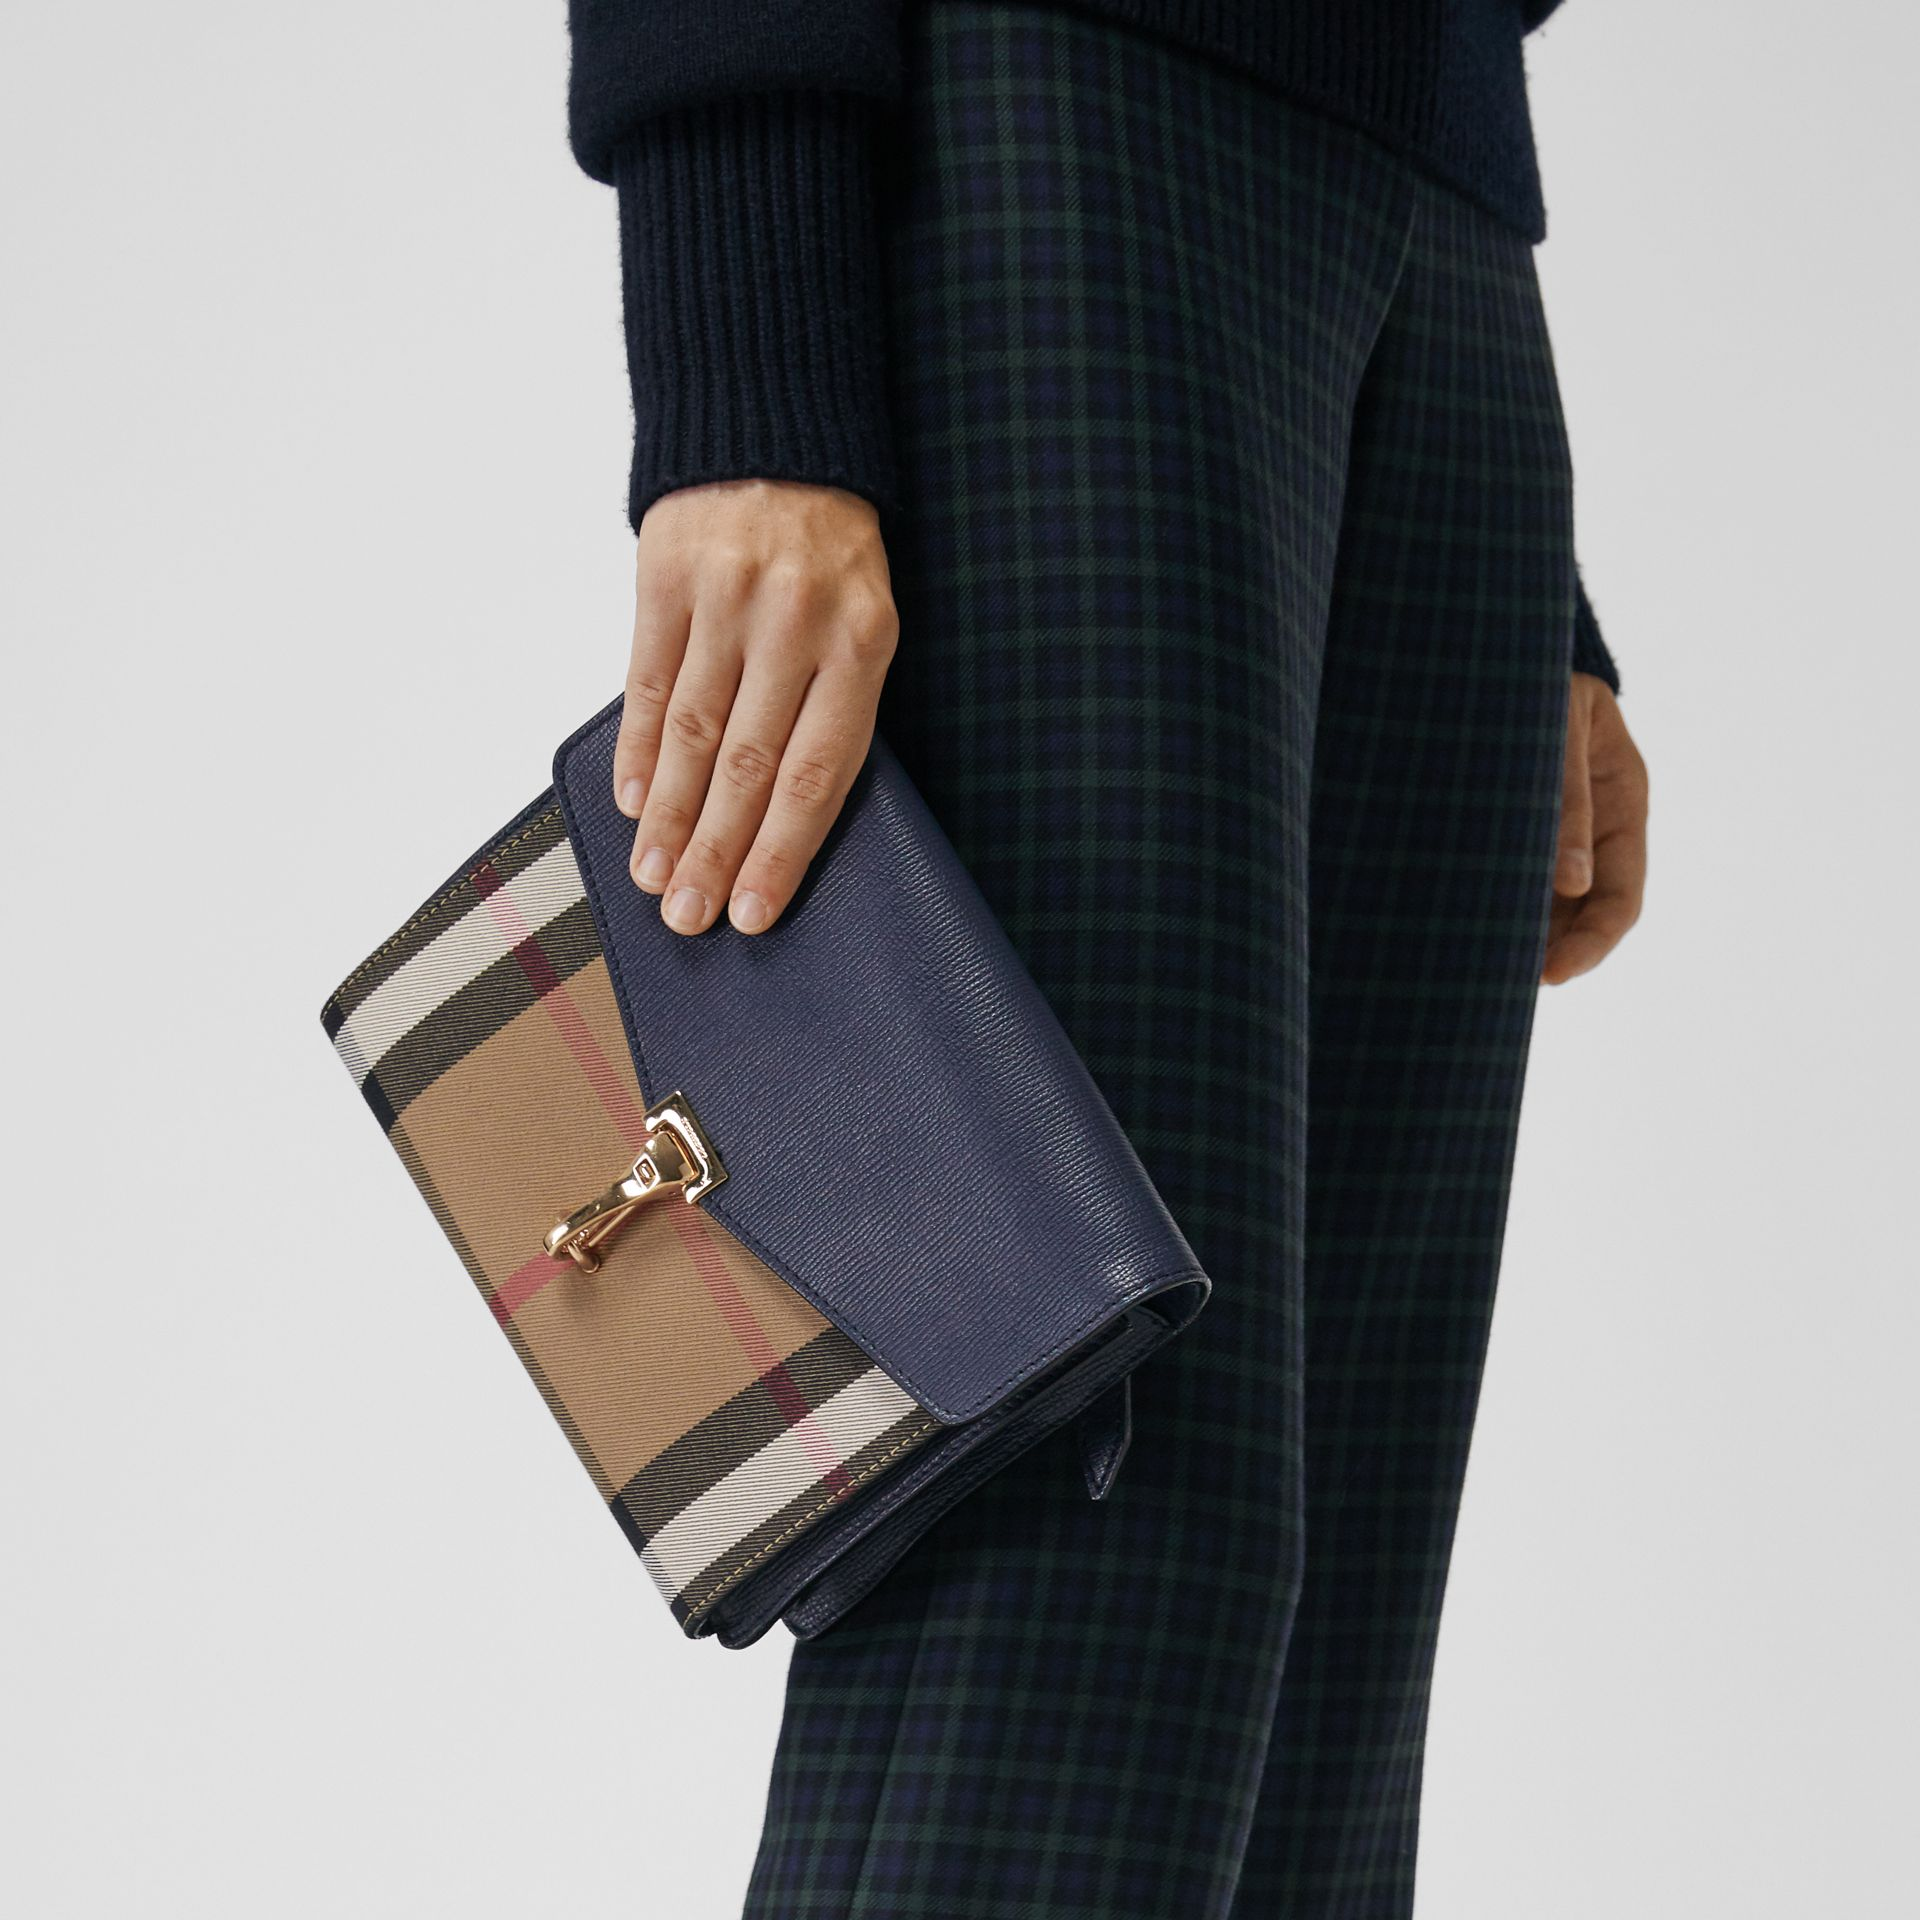 Small Leather and House Check Crossbody Bag in Ink Blue - Women | Burberry - gallery image 3